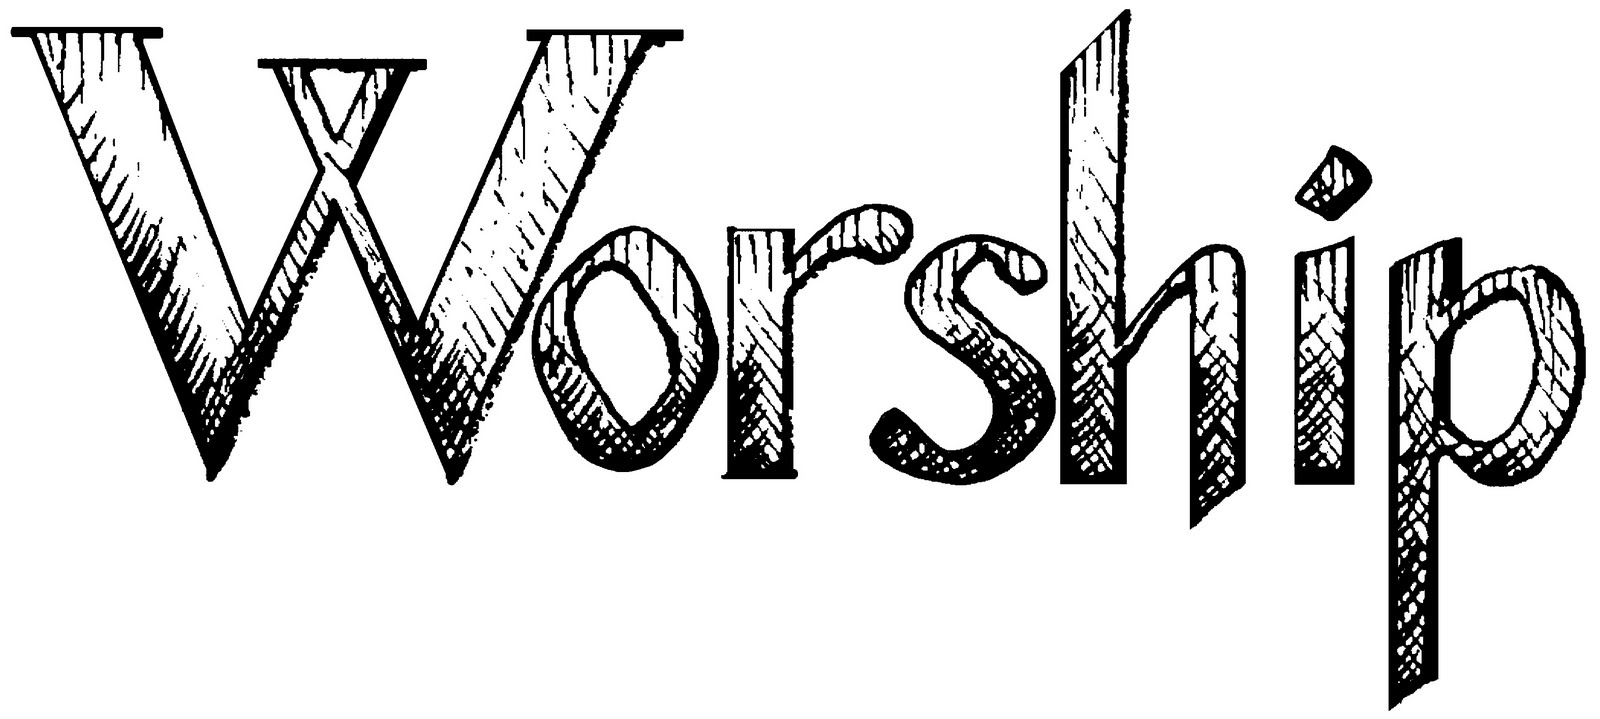 Welcome to worship clipart clipart kid image #41905.